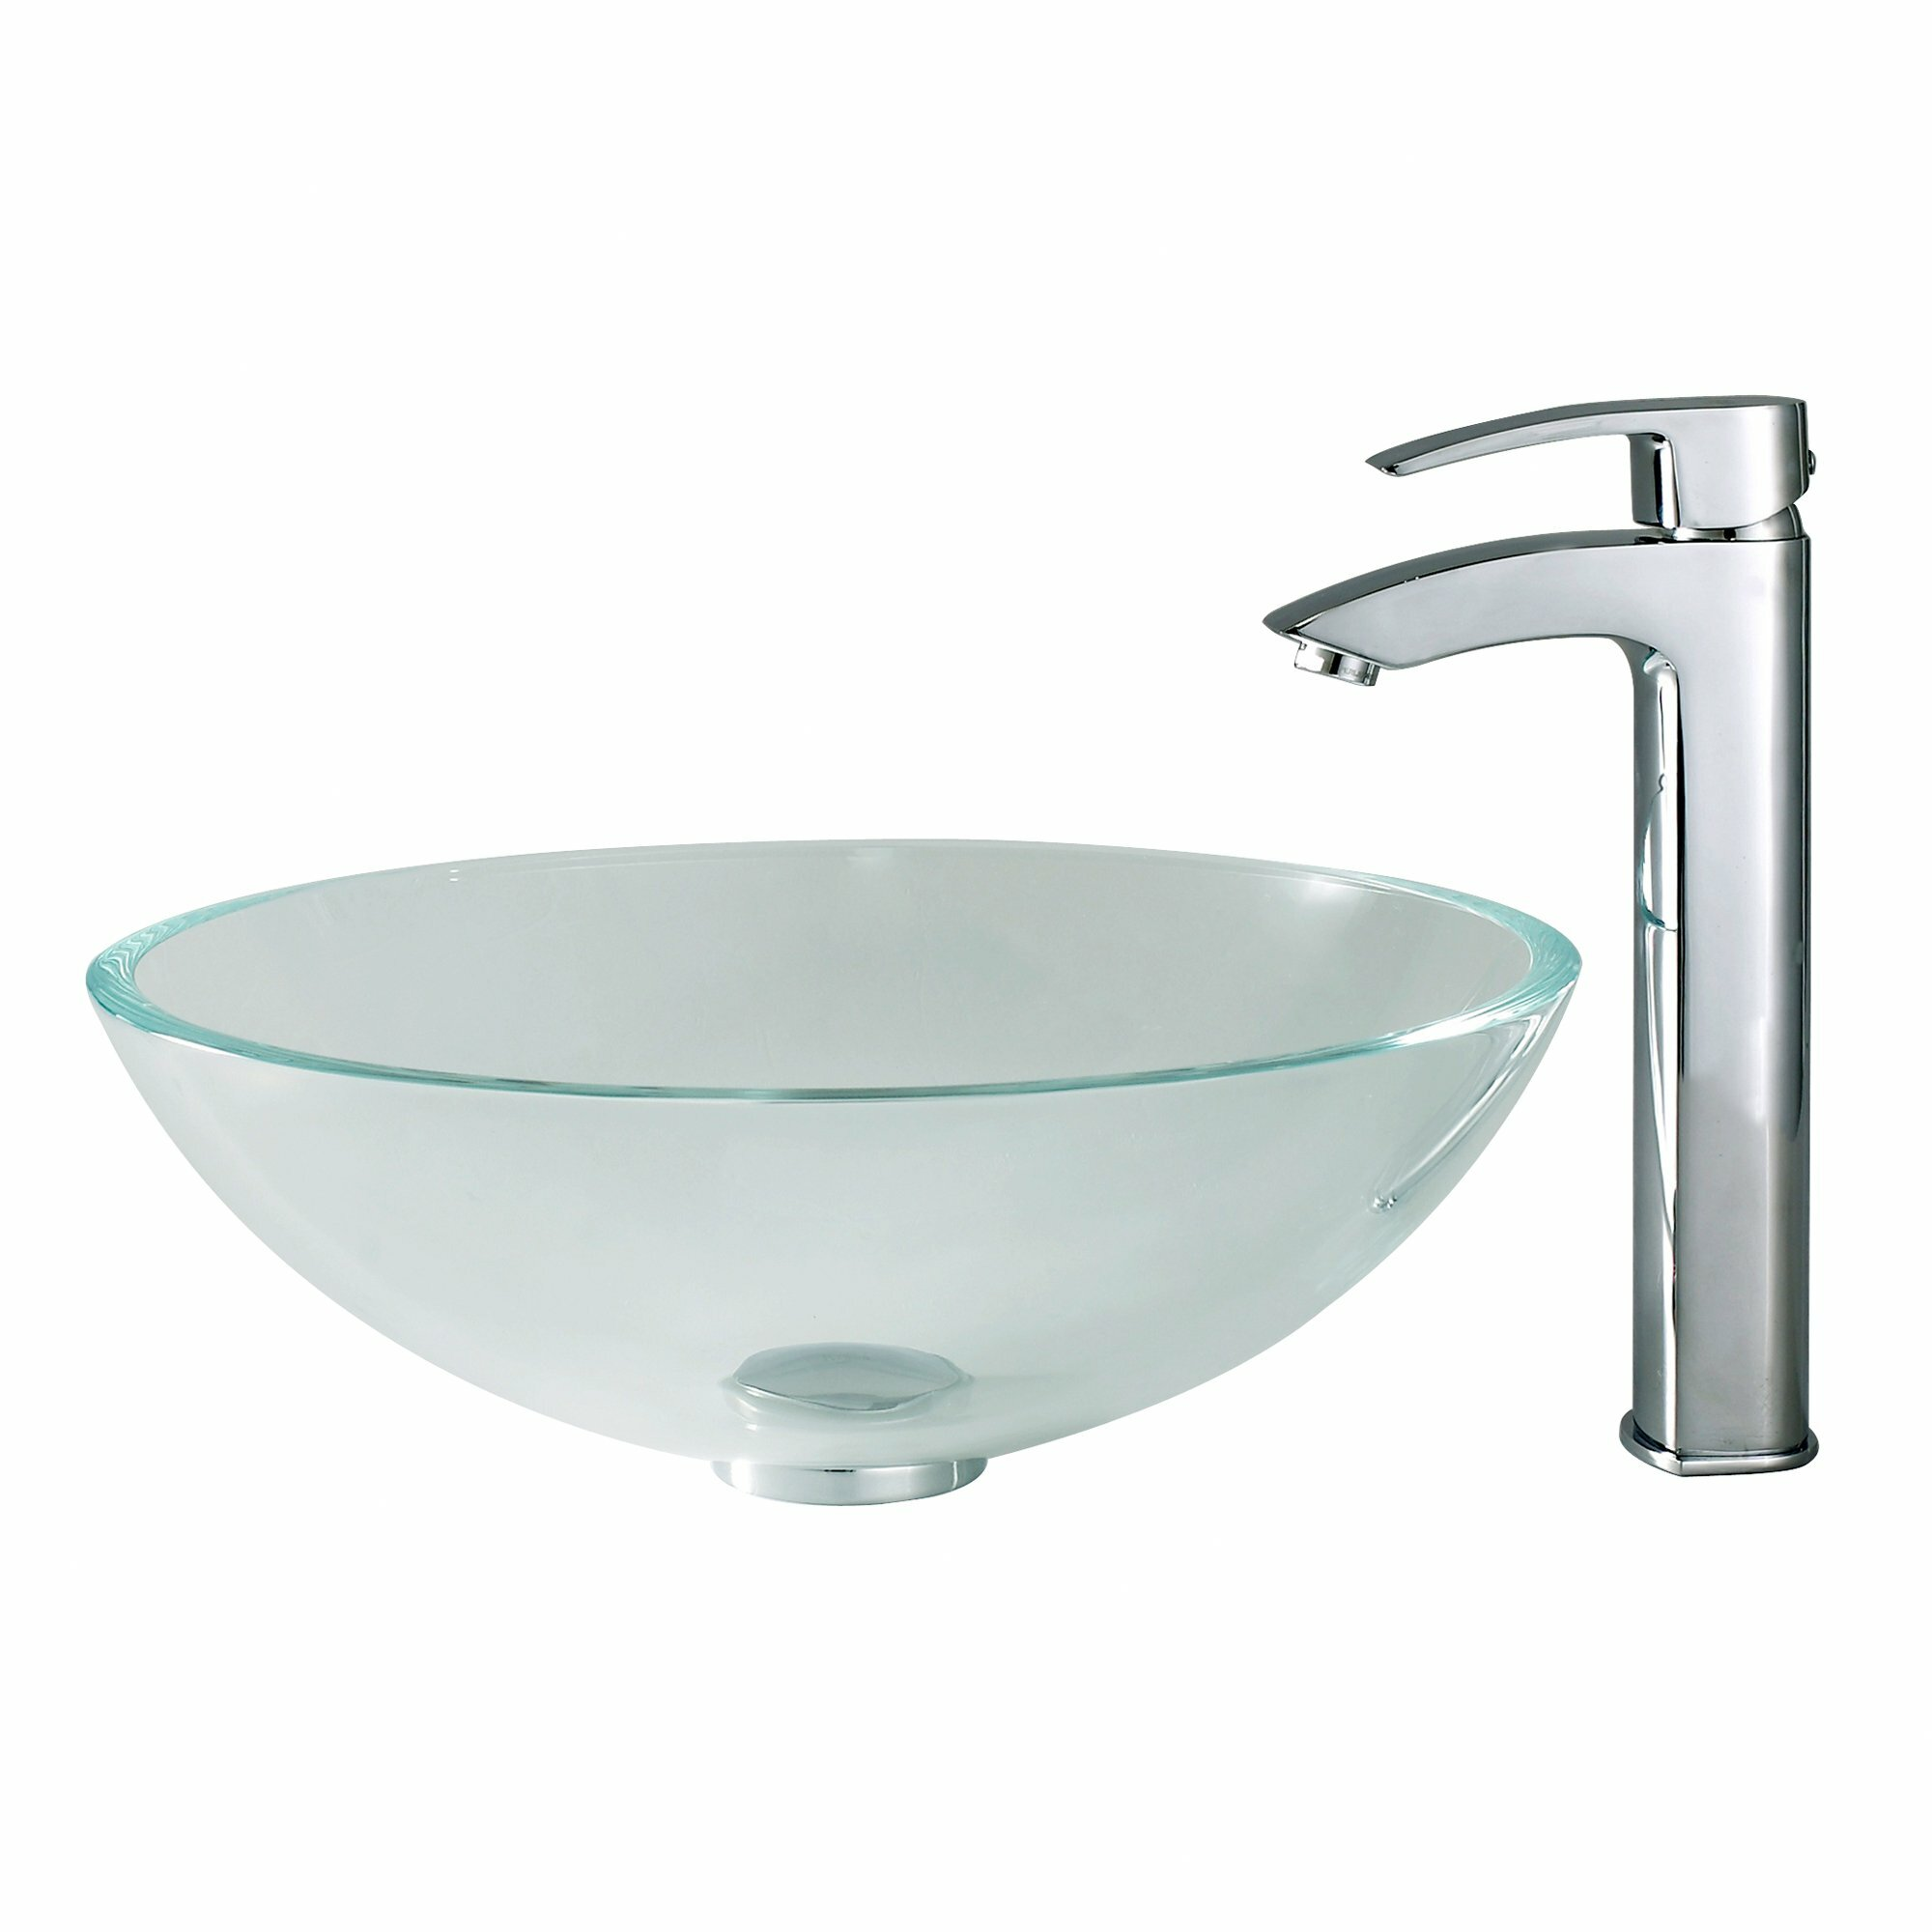 Kraus Crystal Clear Glass Vessel Sink And Visio Faucet Reviews Wayfair